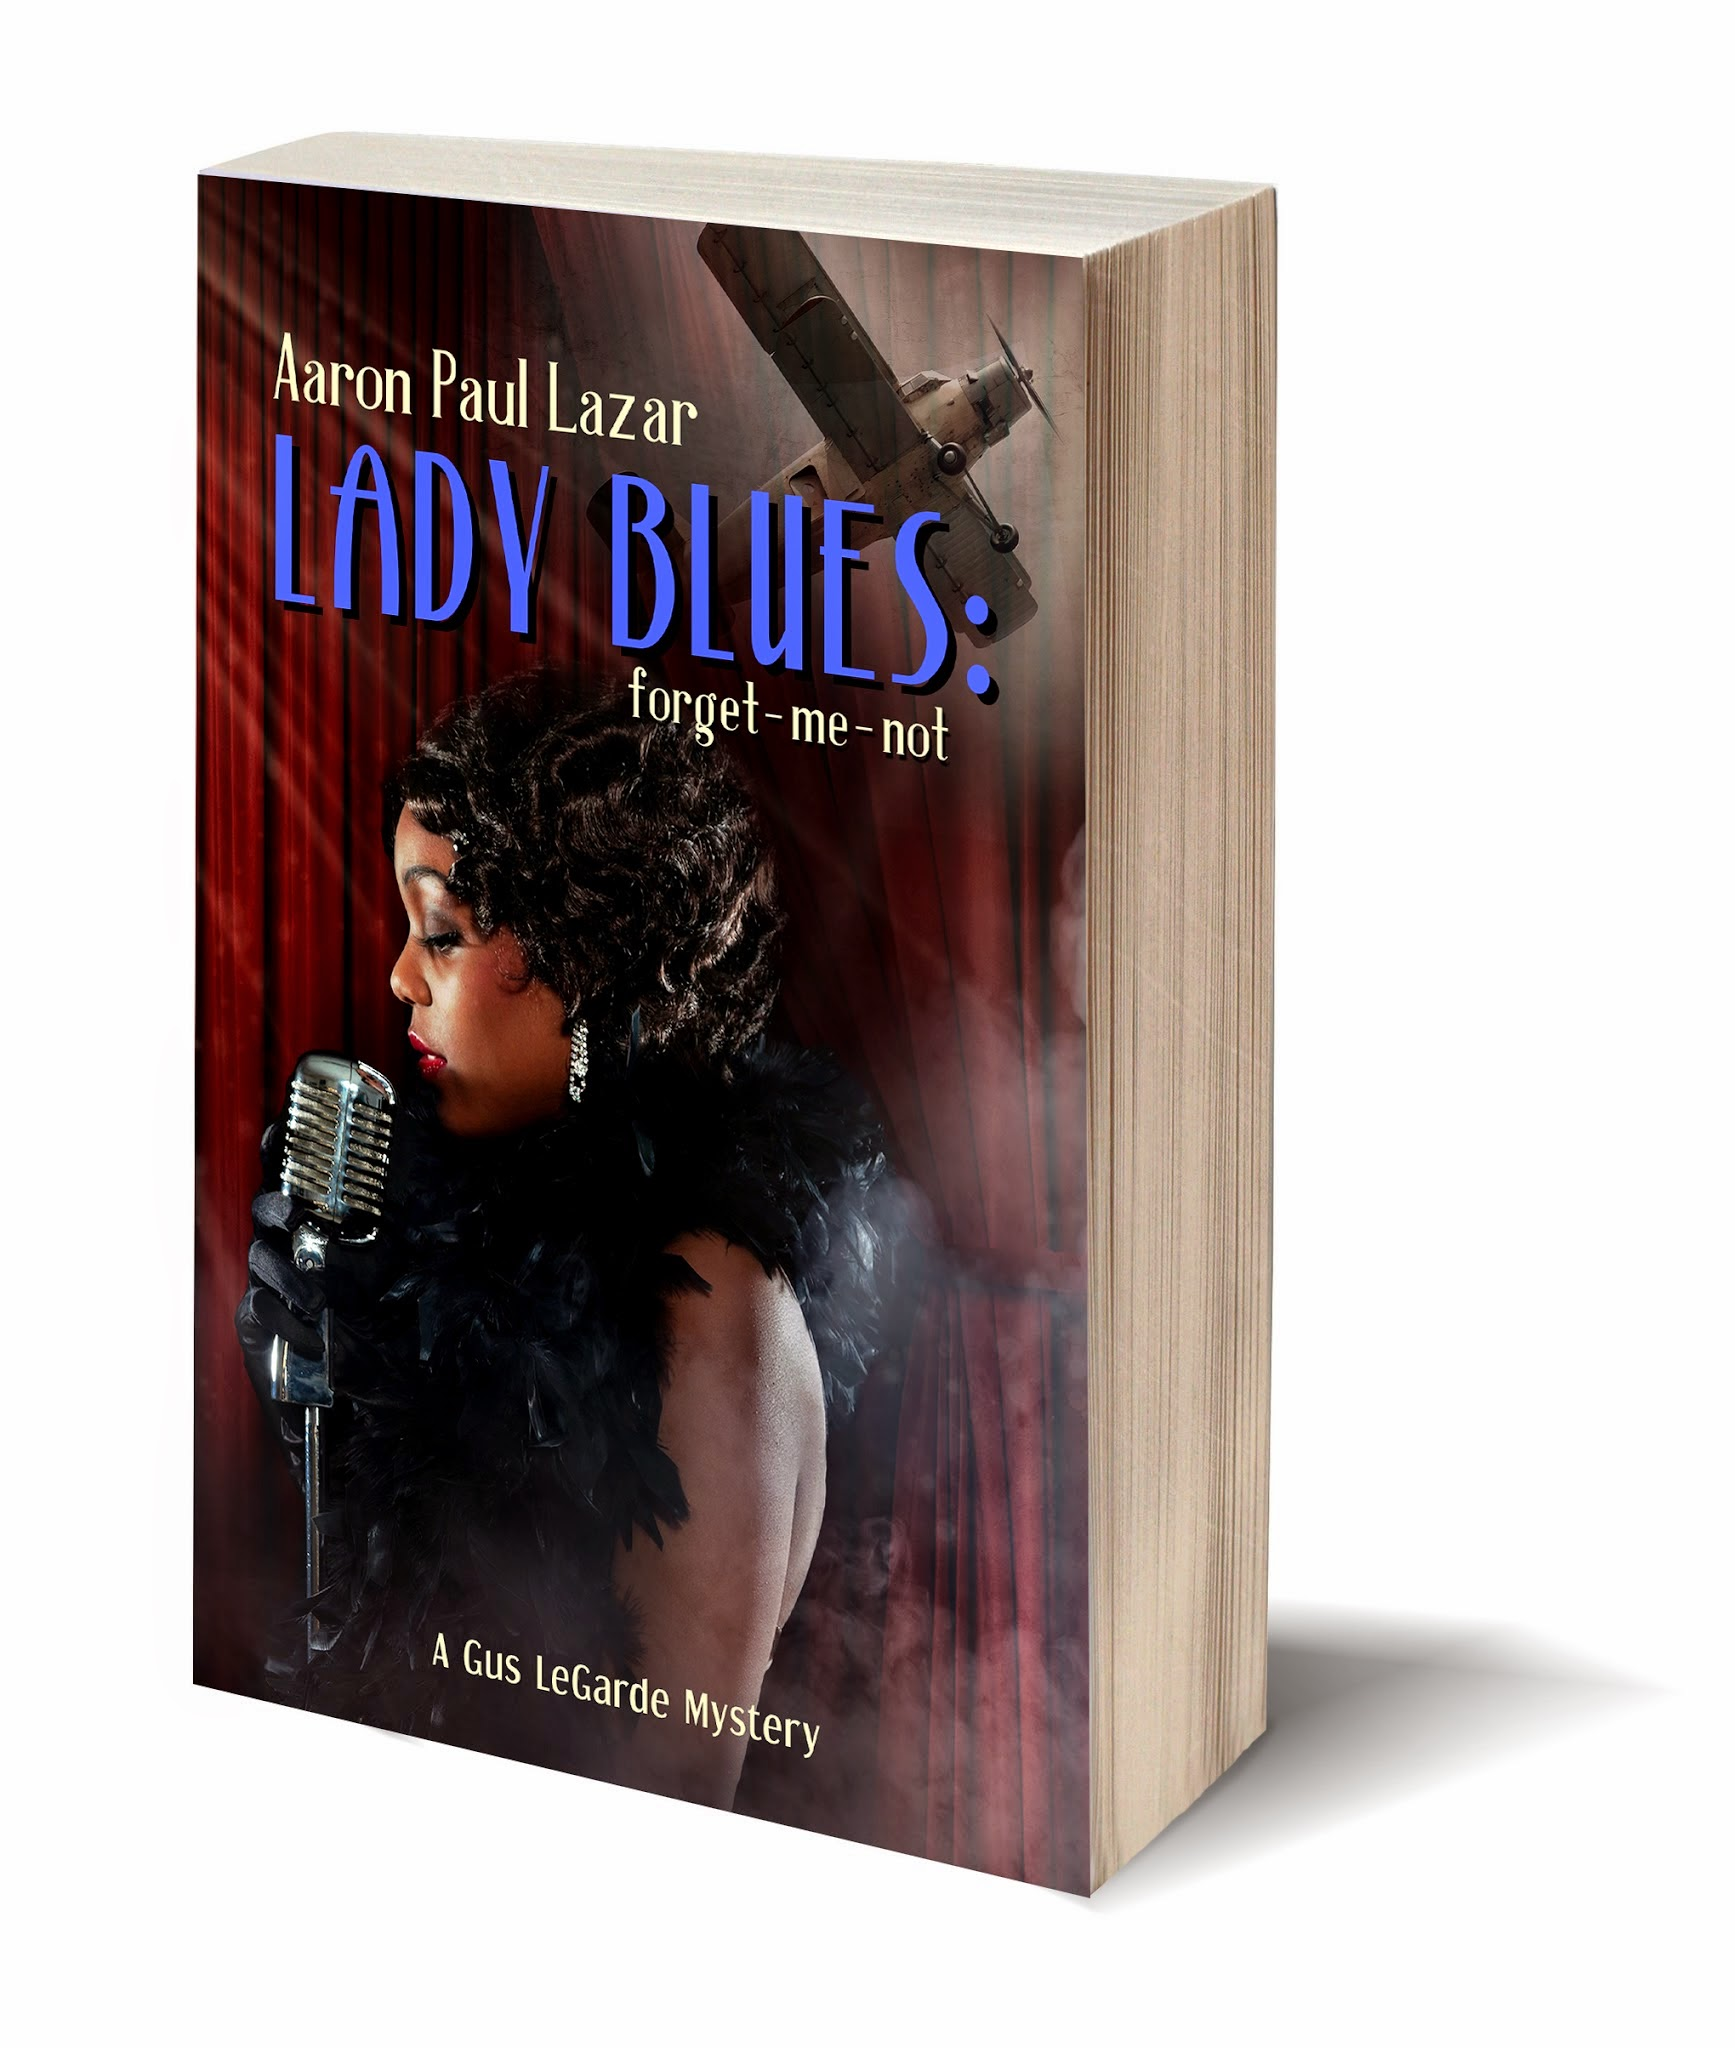 http://www.amazon.com/Lady-Blues-forget-me-not-LeGarde-Mysteries-ebook/dp/B00IS6EXG0/ref=sr_1_1?ie=UTF8&qid=1396533441&sr=8-1&keywords=lady+blues